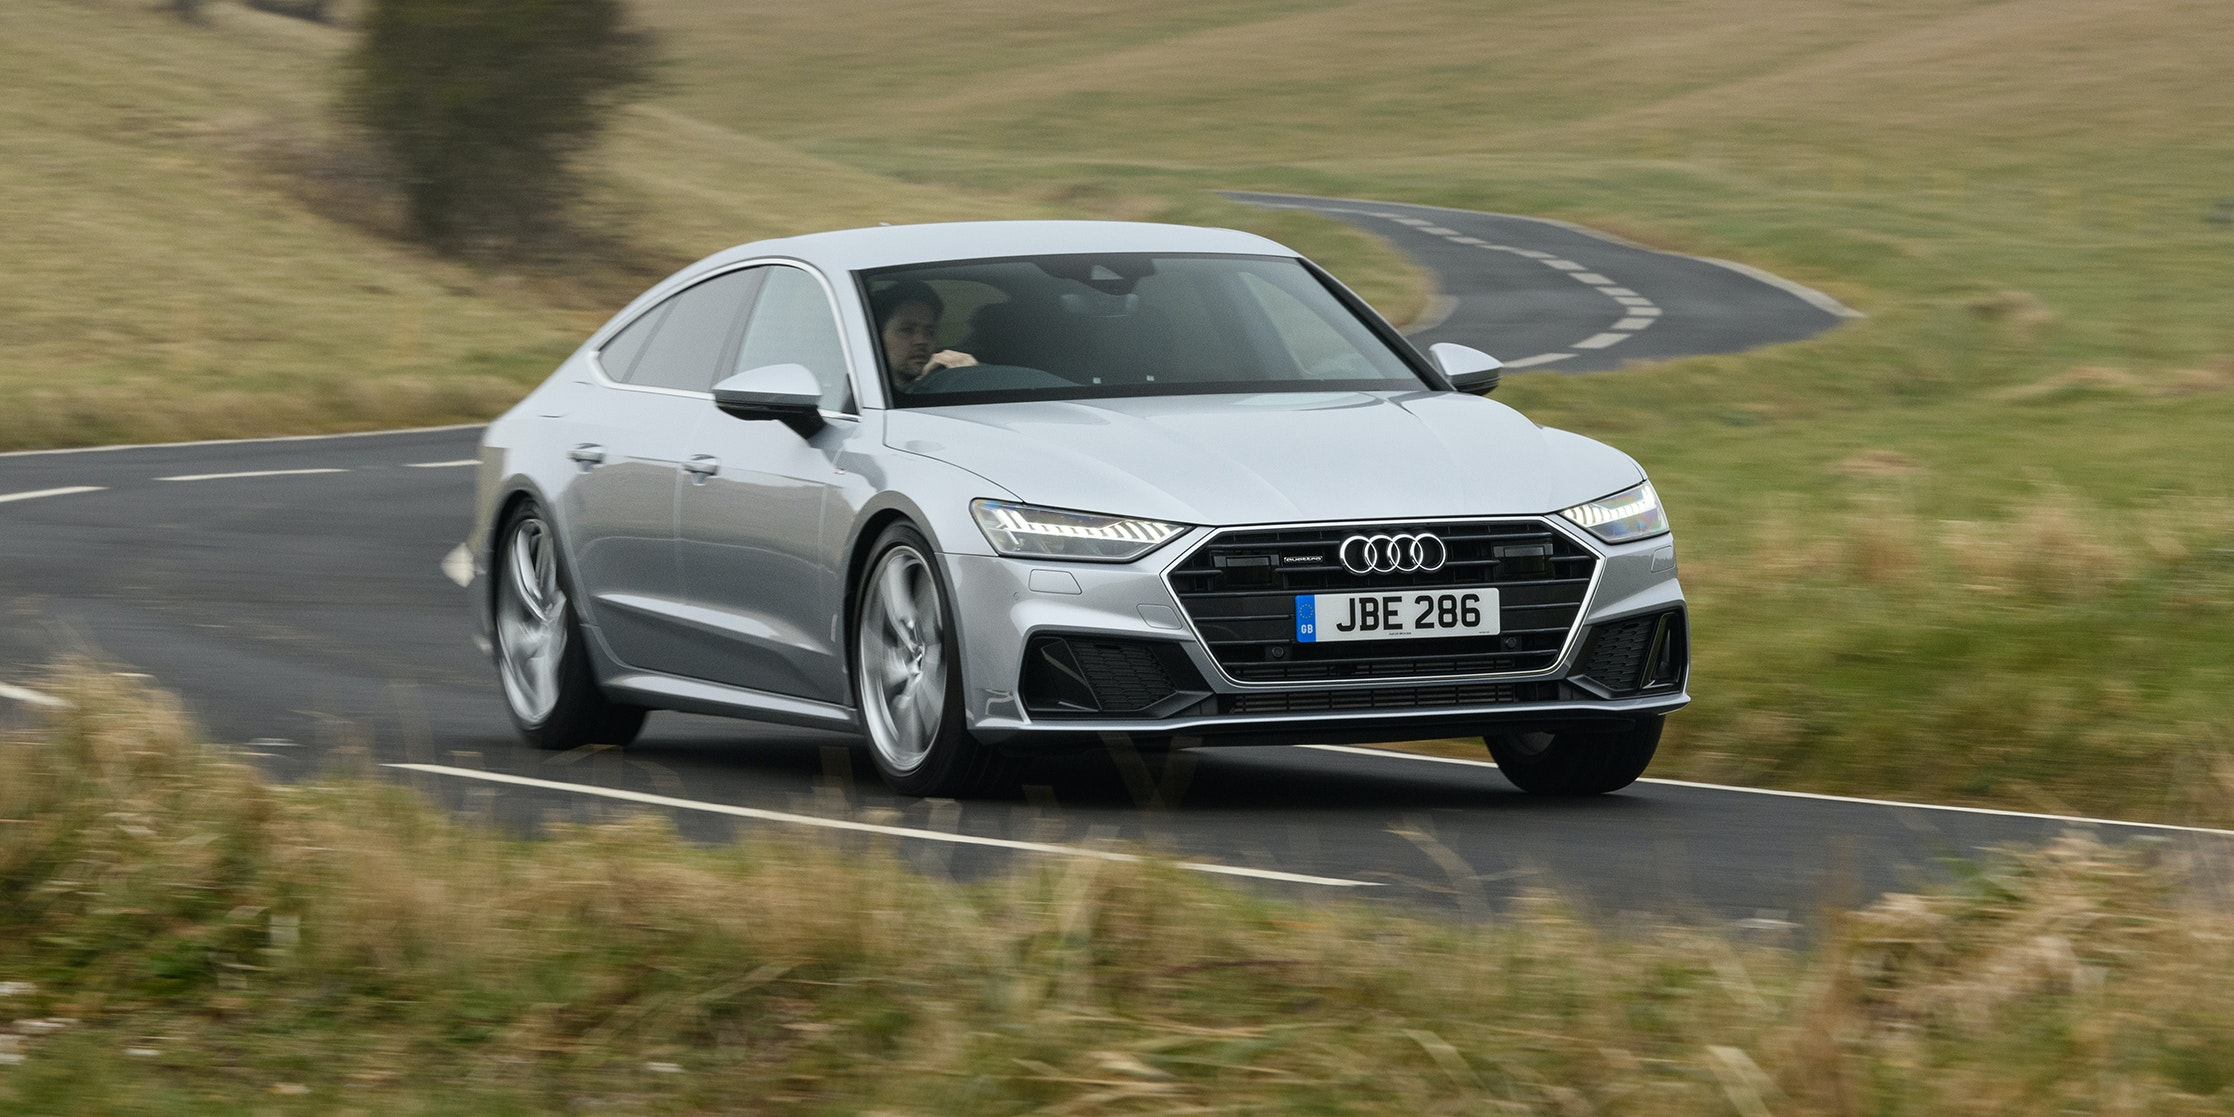 New Audi A7 Sportback Review Carwow